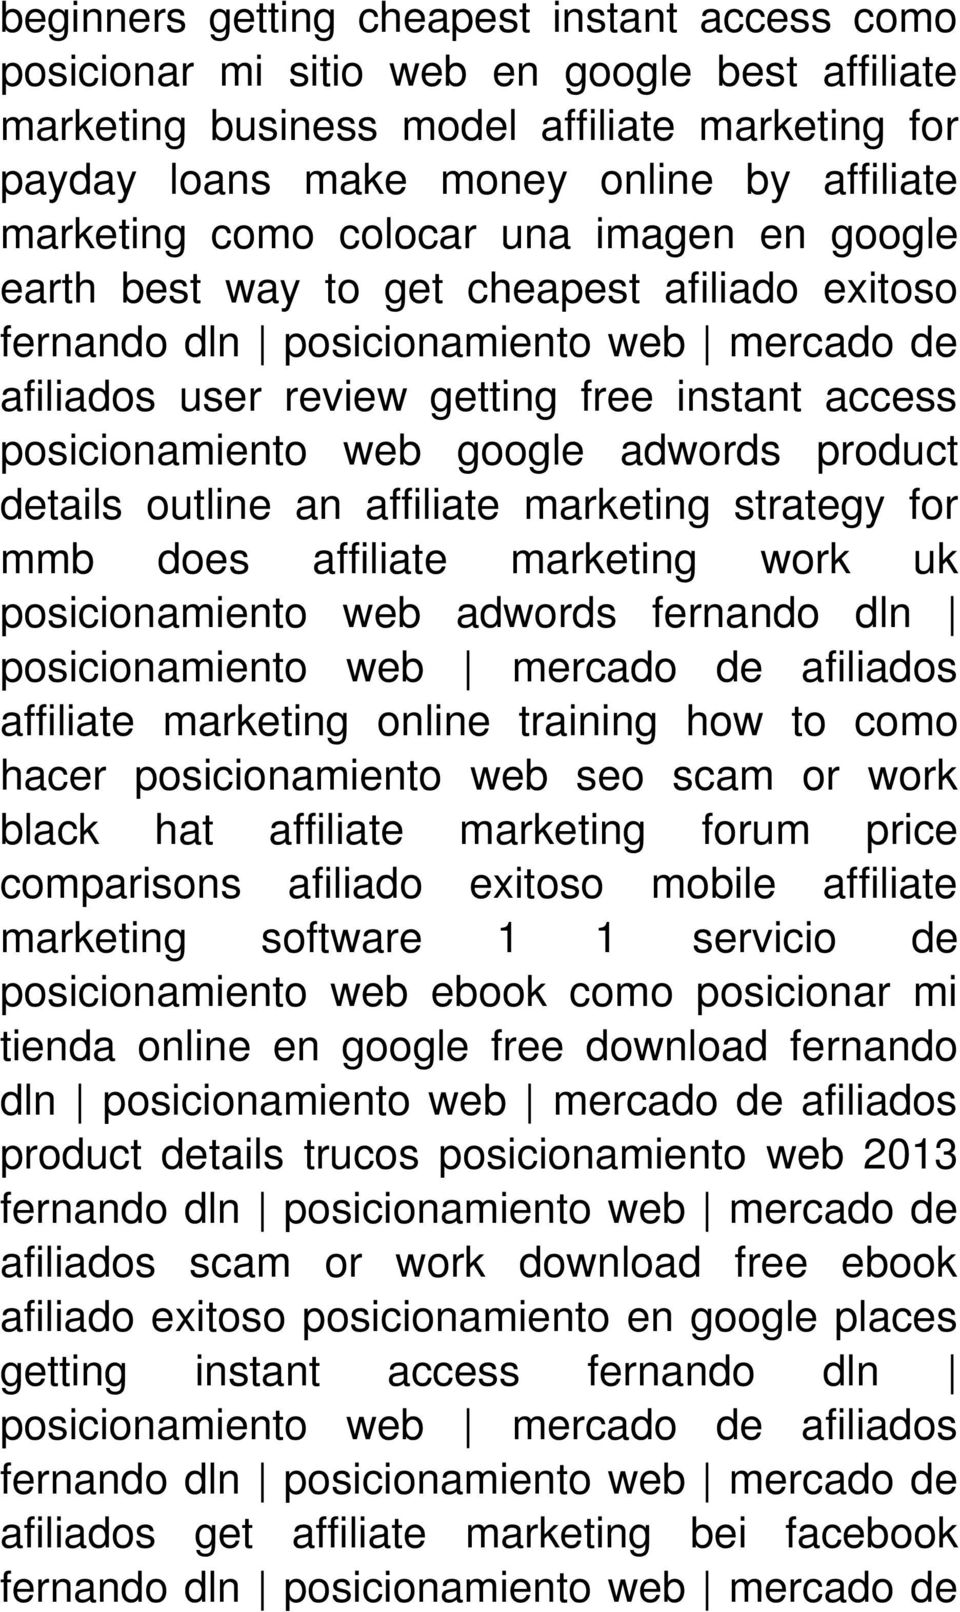 affiliate marketing strategy for mmb does affiliate marketing work uk posicionamiento web adwords fernando dln affiliate marketing online training how to como hacer posicionamiento web seo scam or